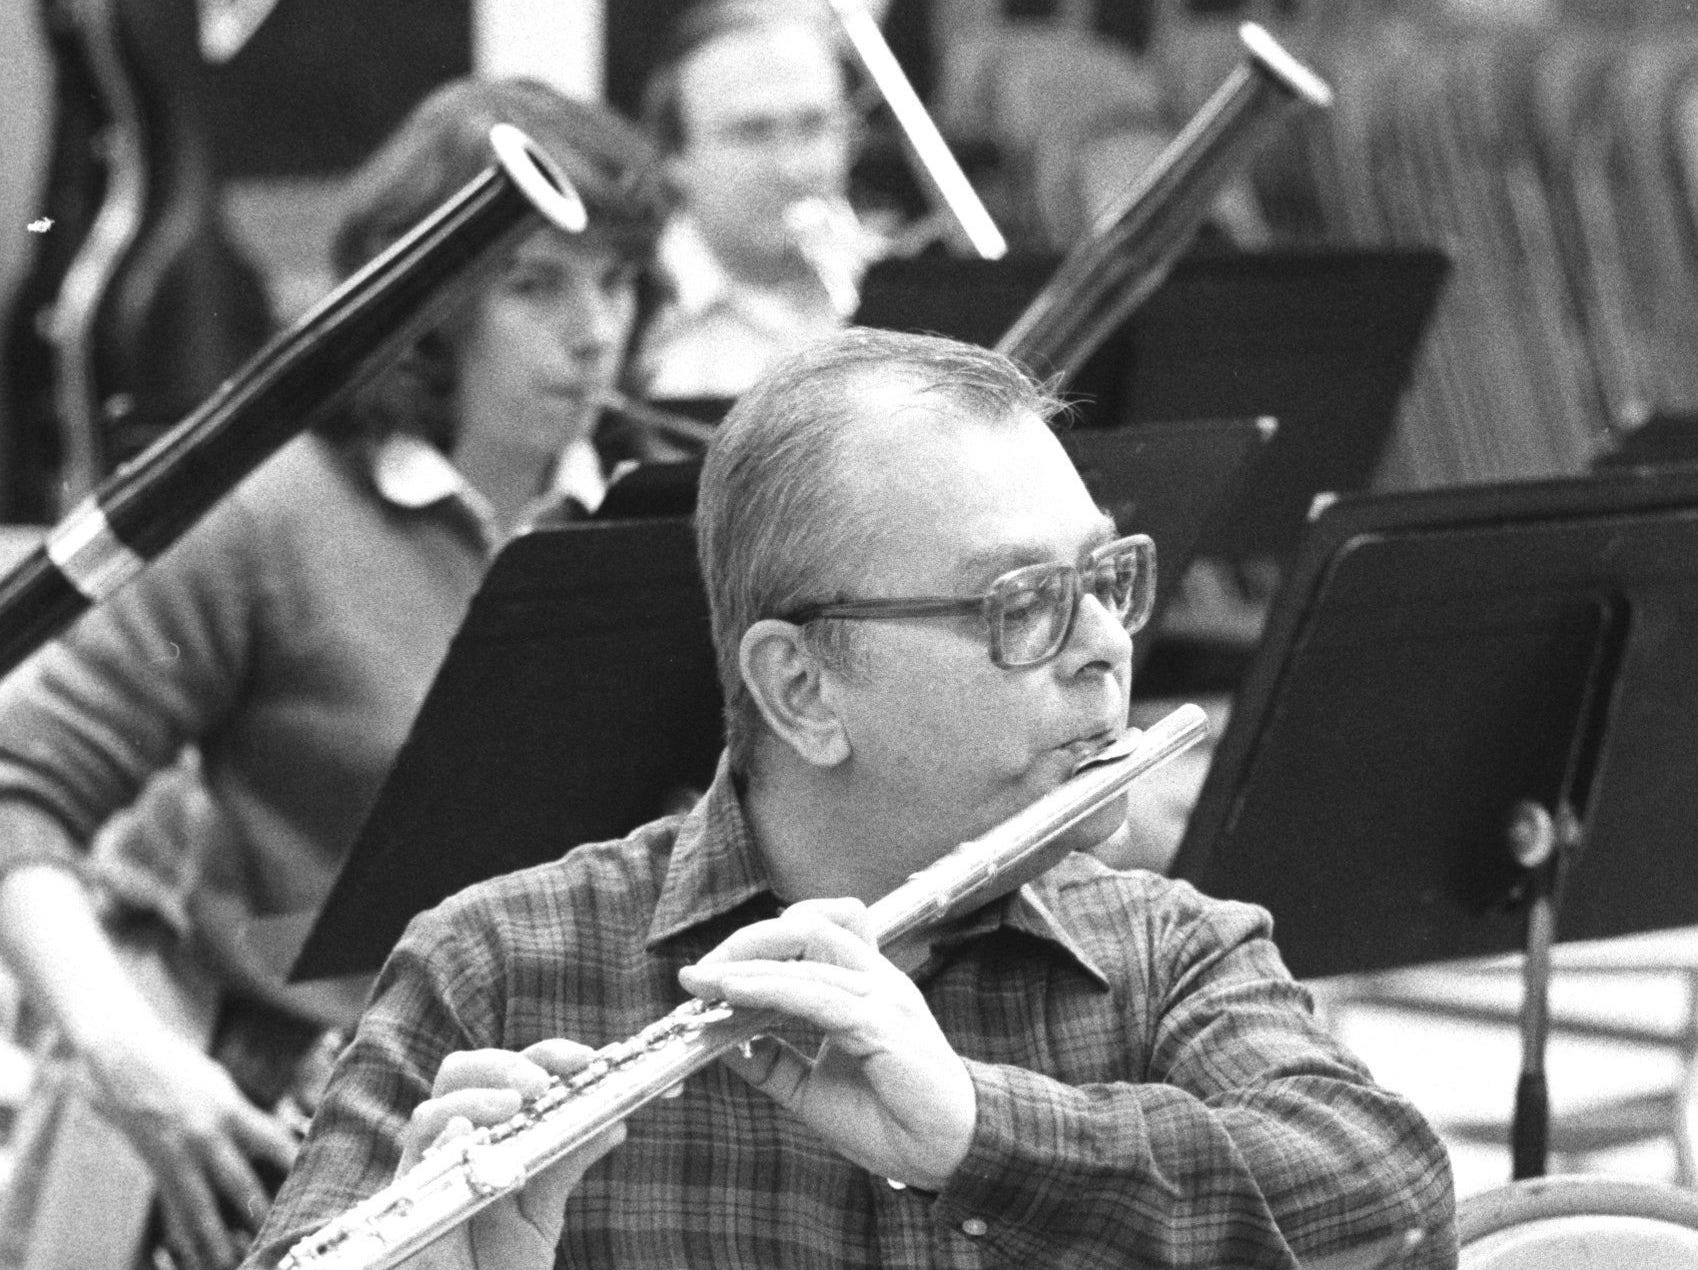 Rev. Jean Pierre Evans, associate pastor of St. Peter Catholic Church, prepares for a benefit performance with the Germantown Symphony Orchestra on 9 Feb 1984. Proceeds from the concert will be split between the orchestra and church, which is about to enter the third phase of a continuing restoration.